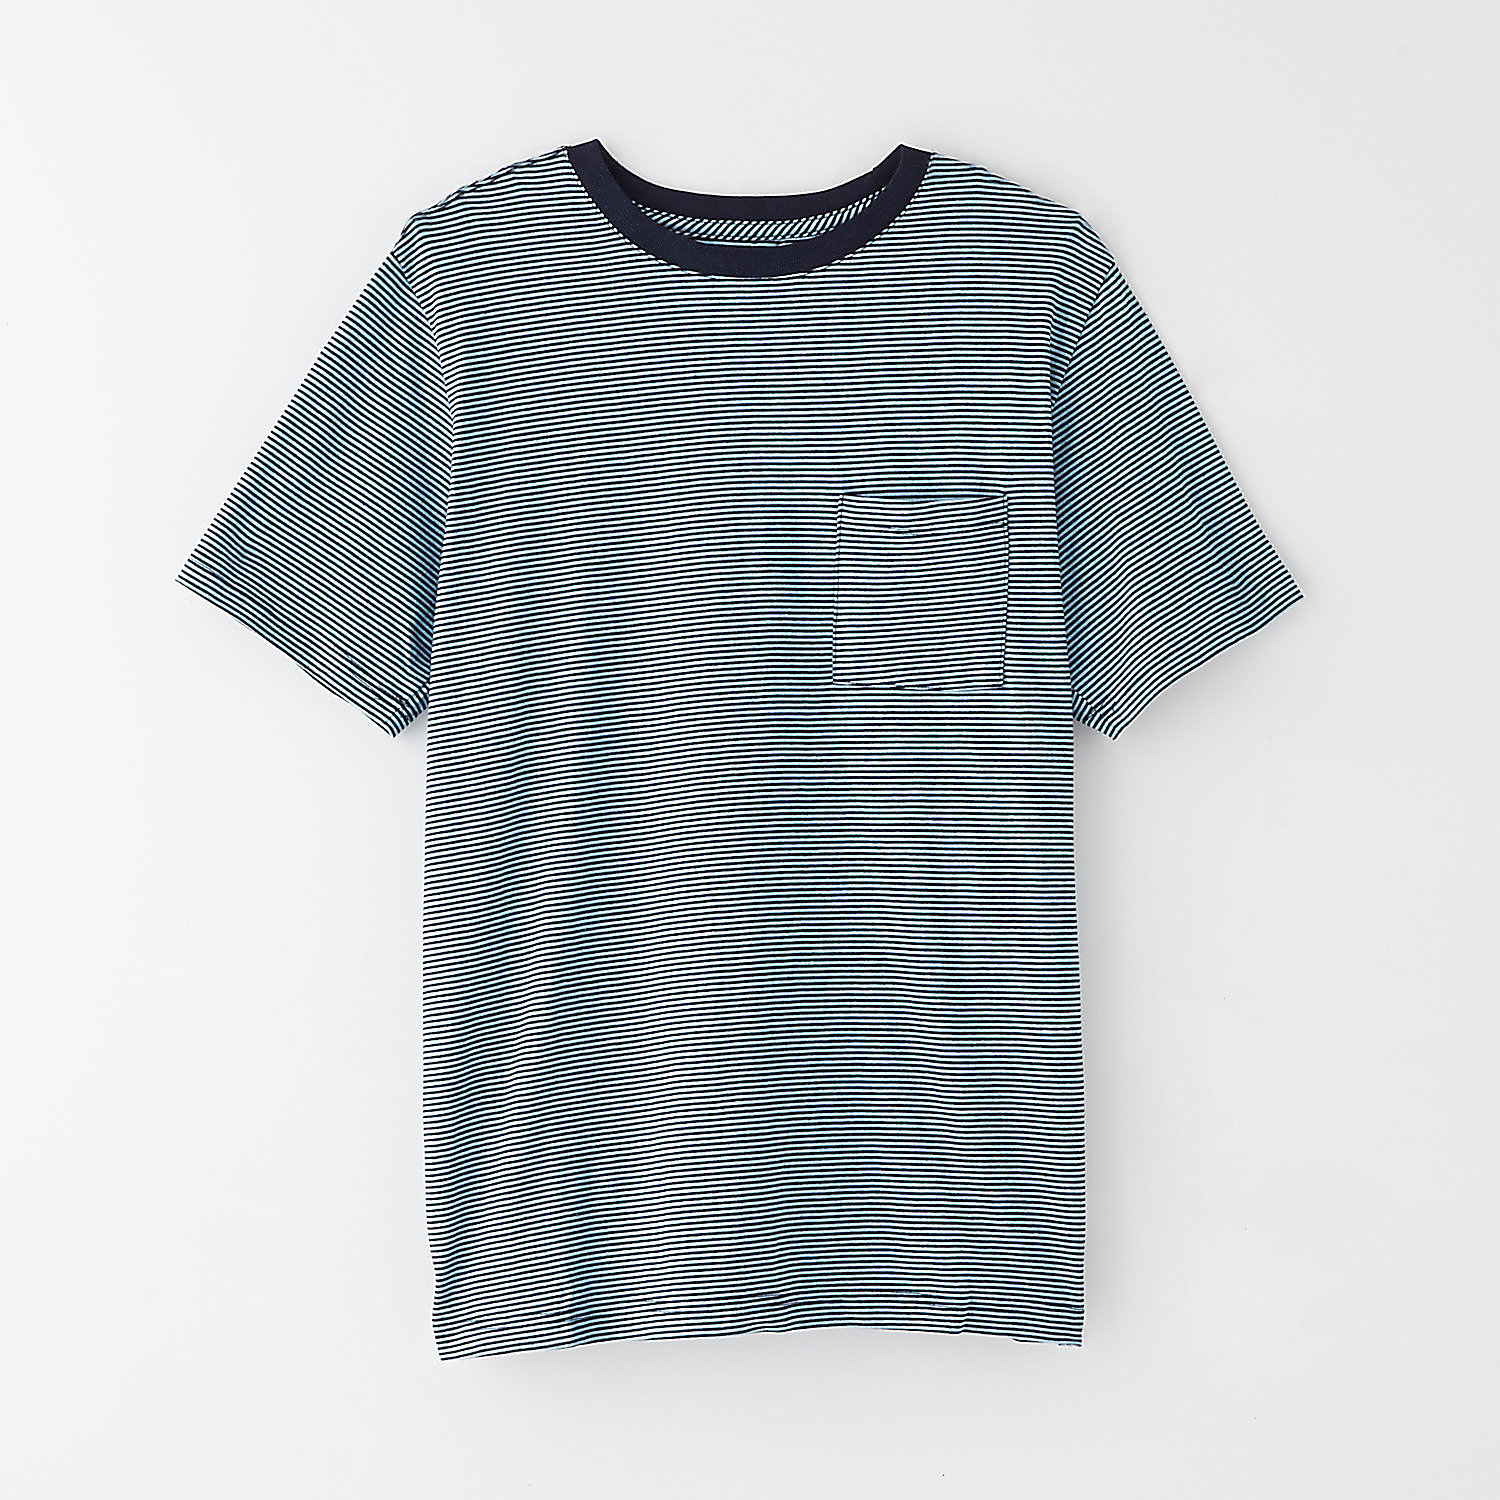 RANDALL BEACH STRIPE TEE